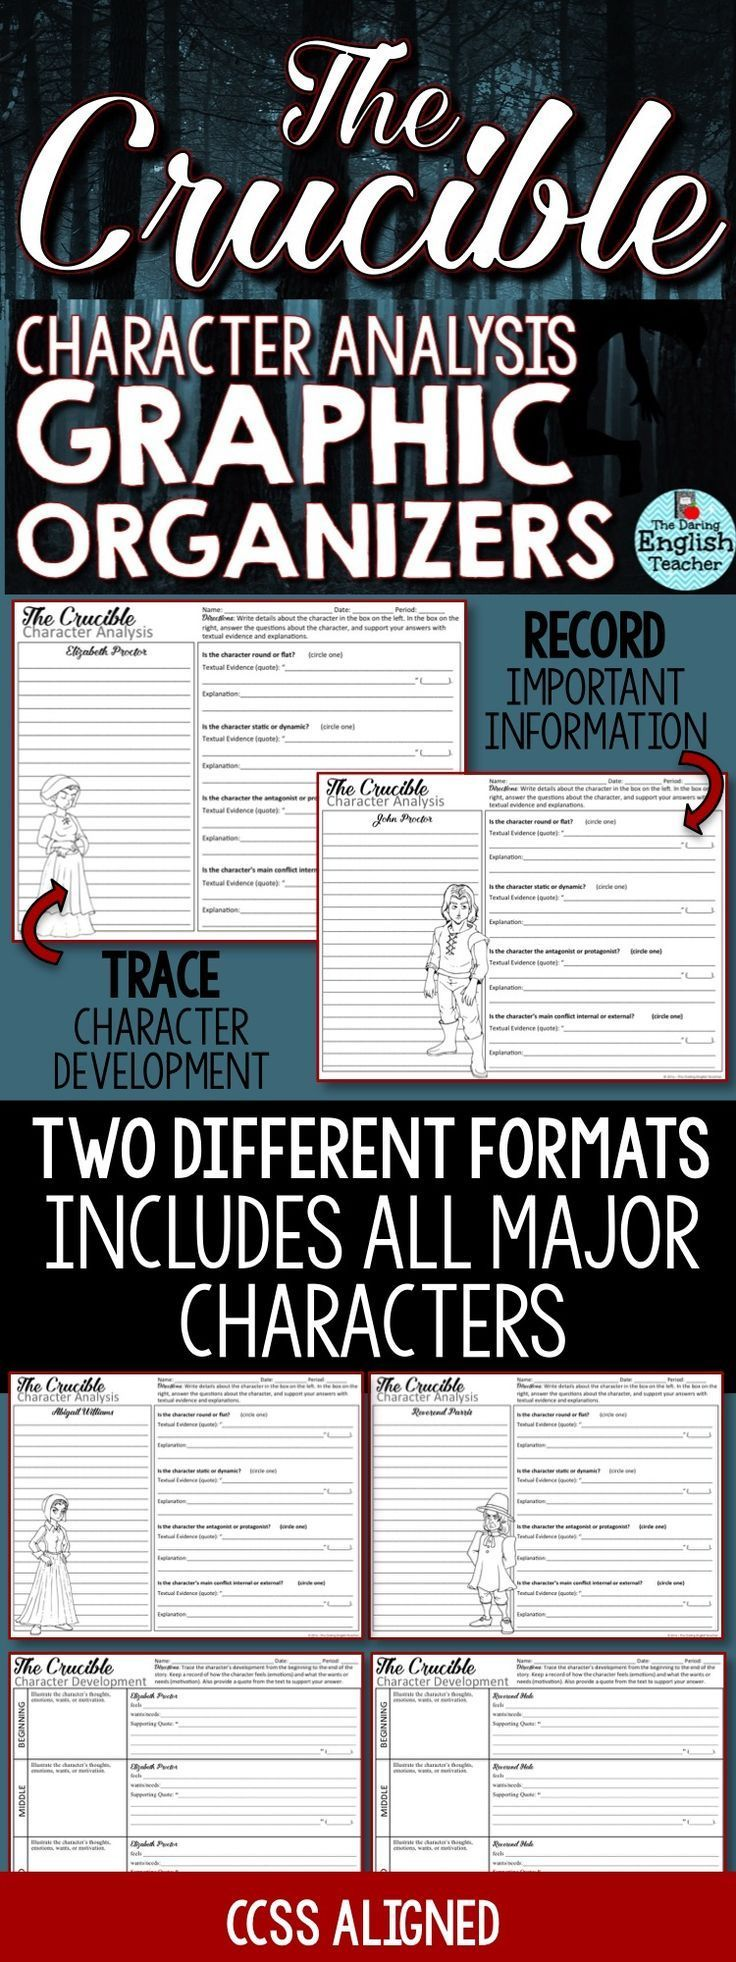 The color red scarlet letter project publish with glogster - Engage Your Students With These Common Core Character Analysis Graphic Organizers For The Crucible Ideal